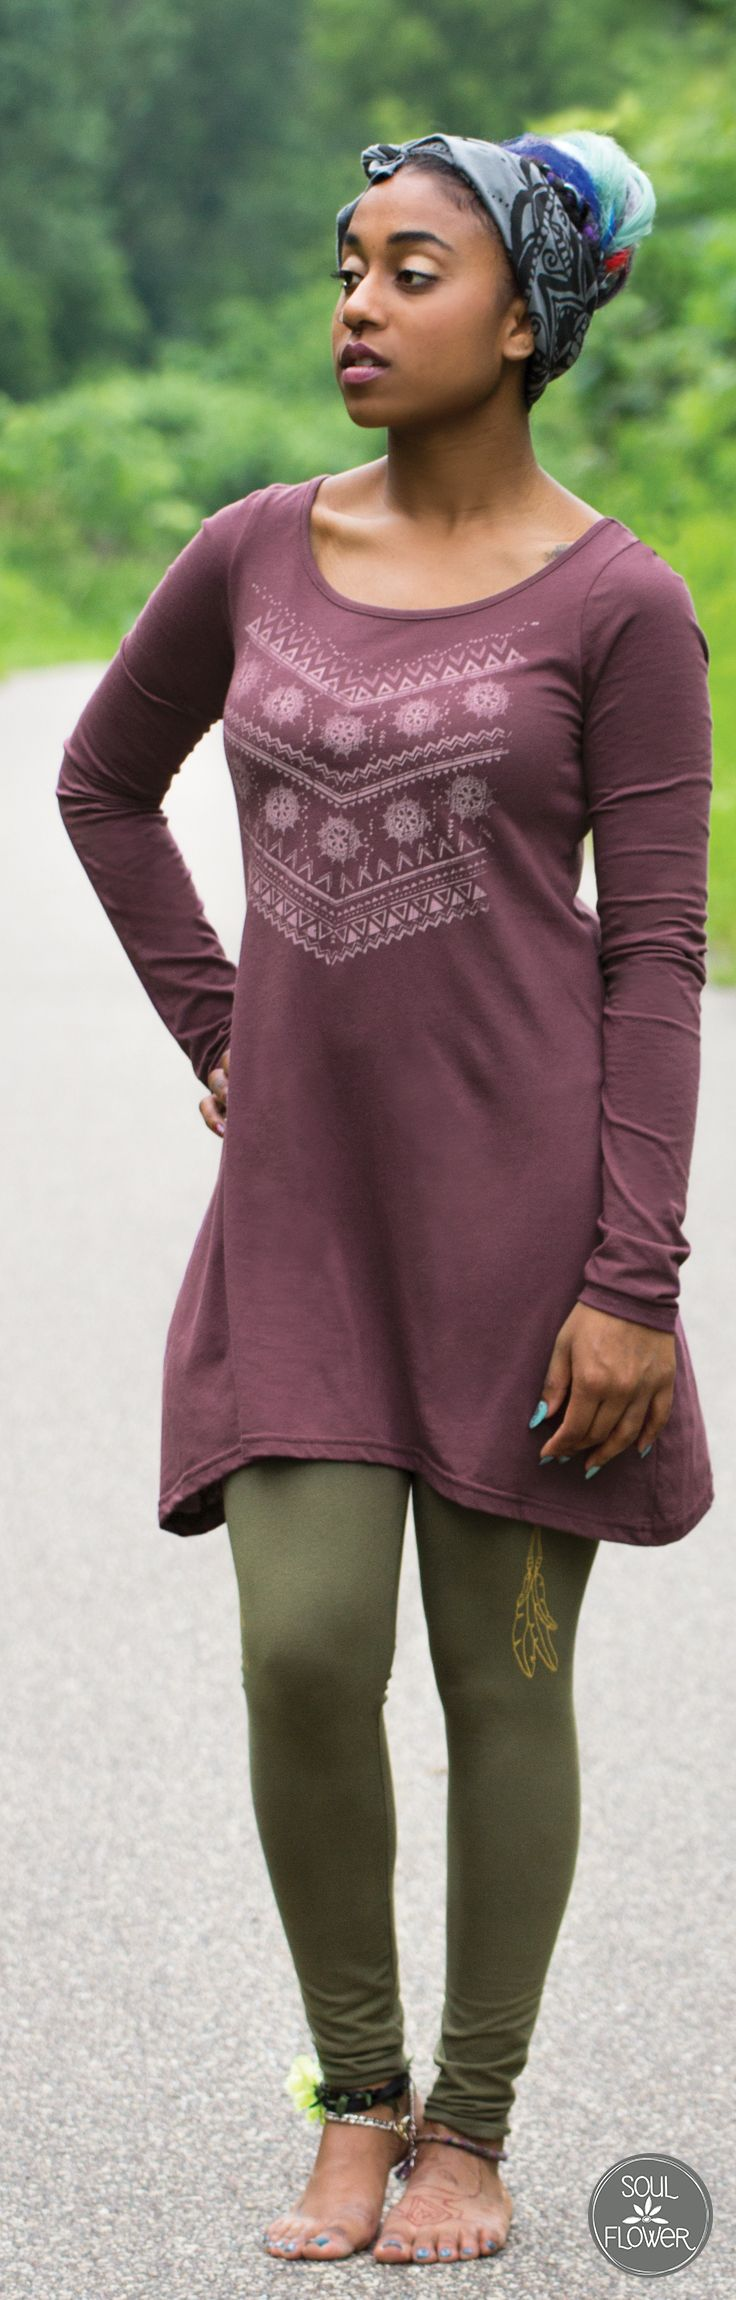 Organic Cotton Fall Tunic | Soul Flower Clothing #hippie #boho #freespirit